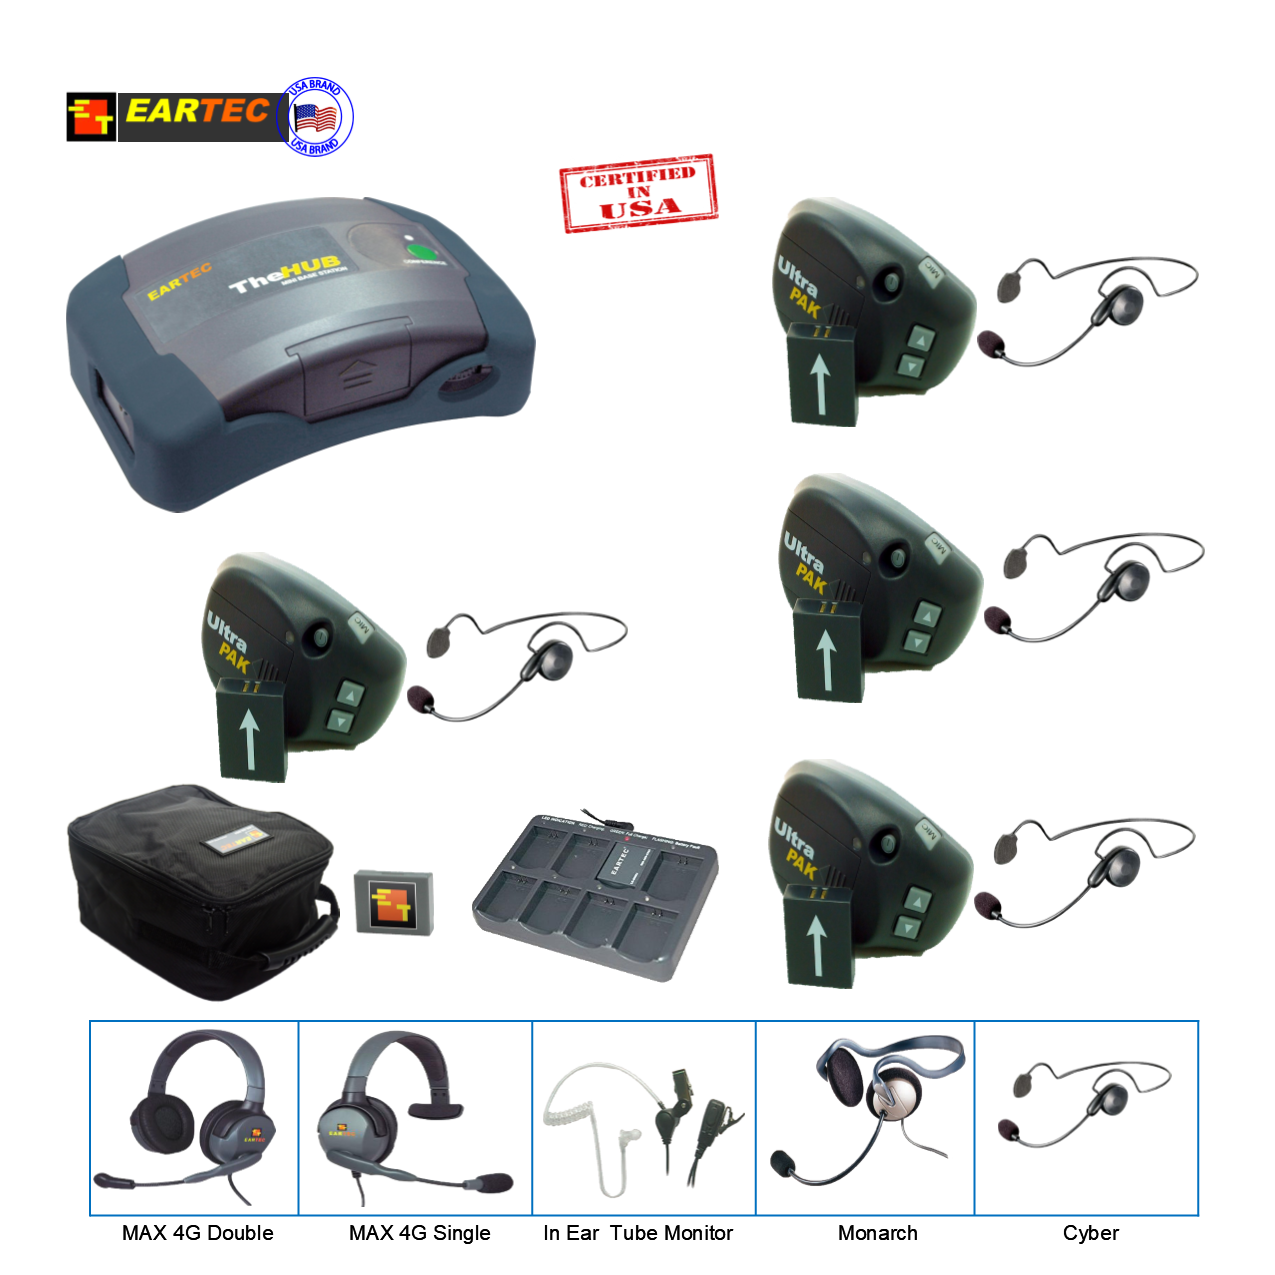 Eartec UPCYB4 Ultrapak & Hub 4Pers W/ 4 Cyber Headset Communications & IFB Eartec